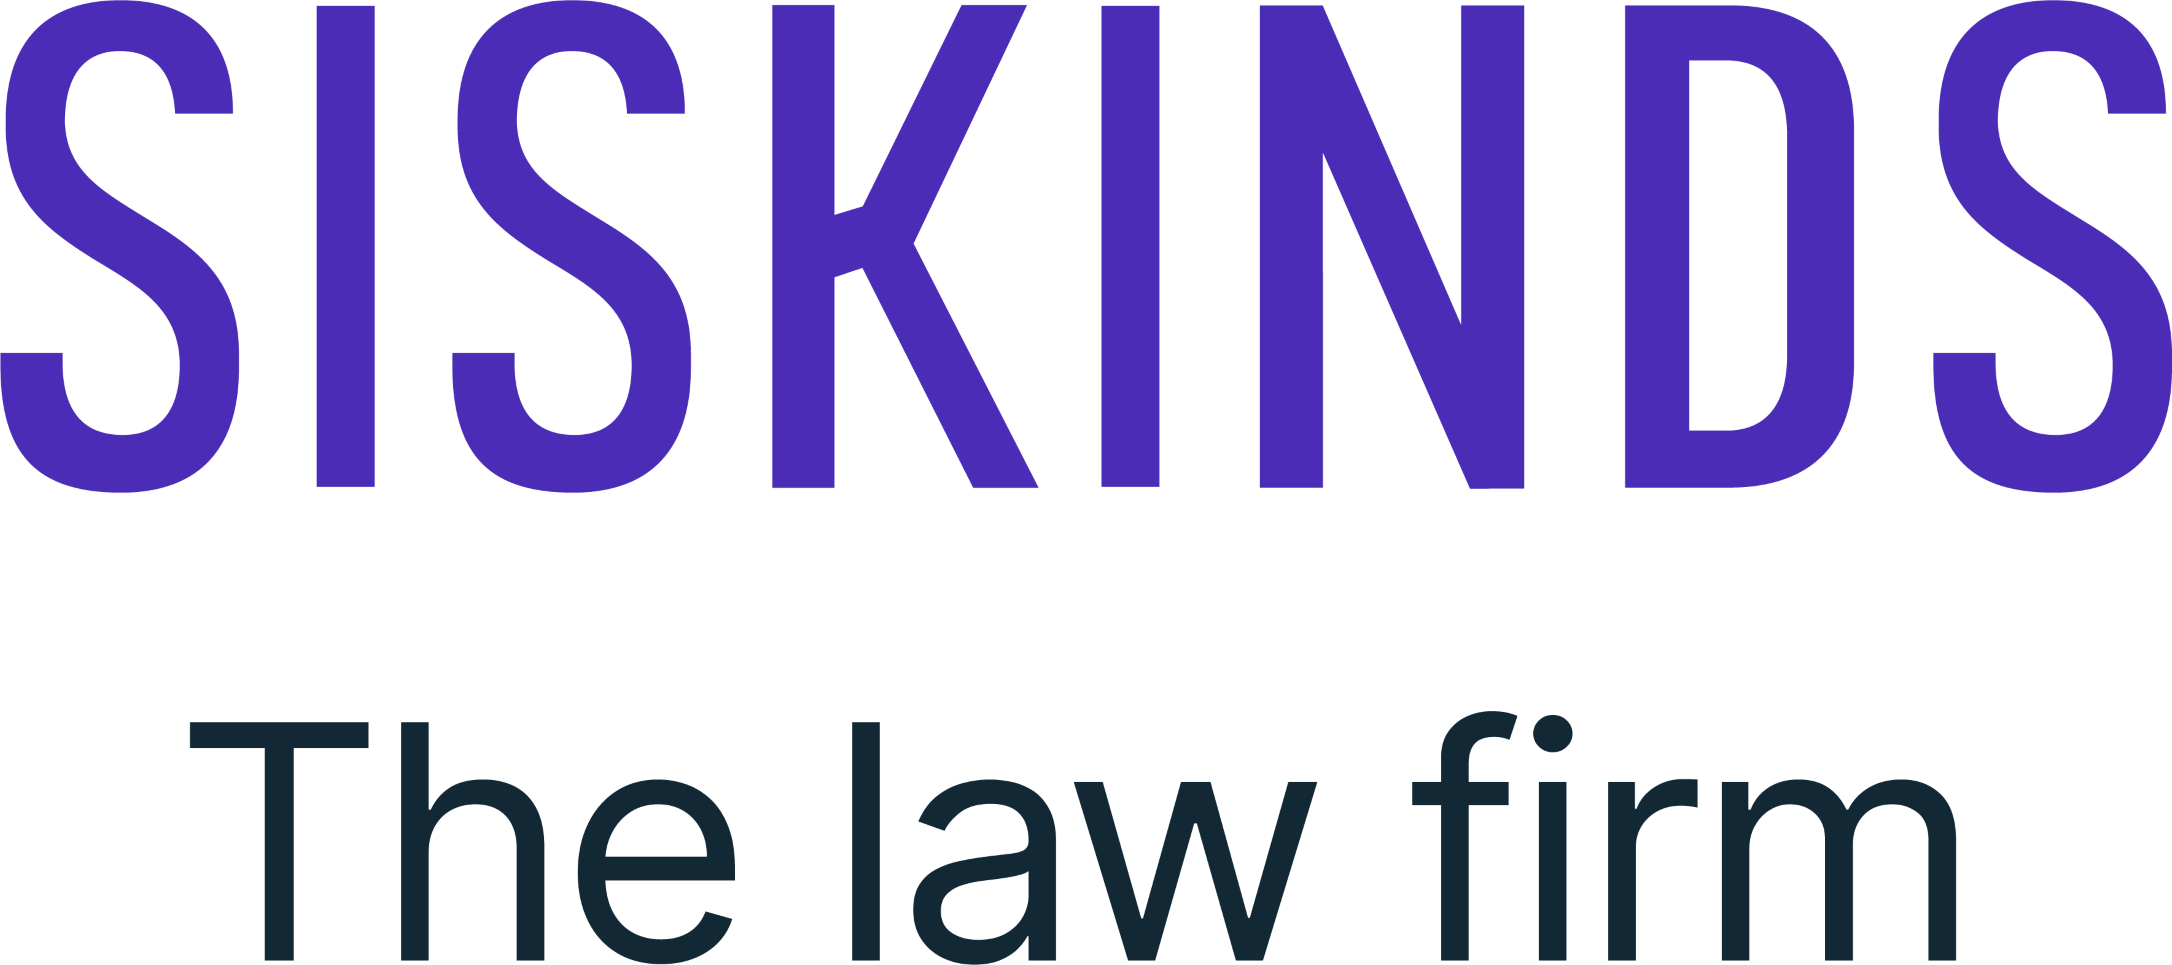 Siskinds The lawfirm